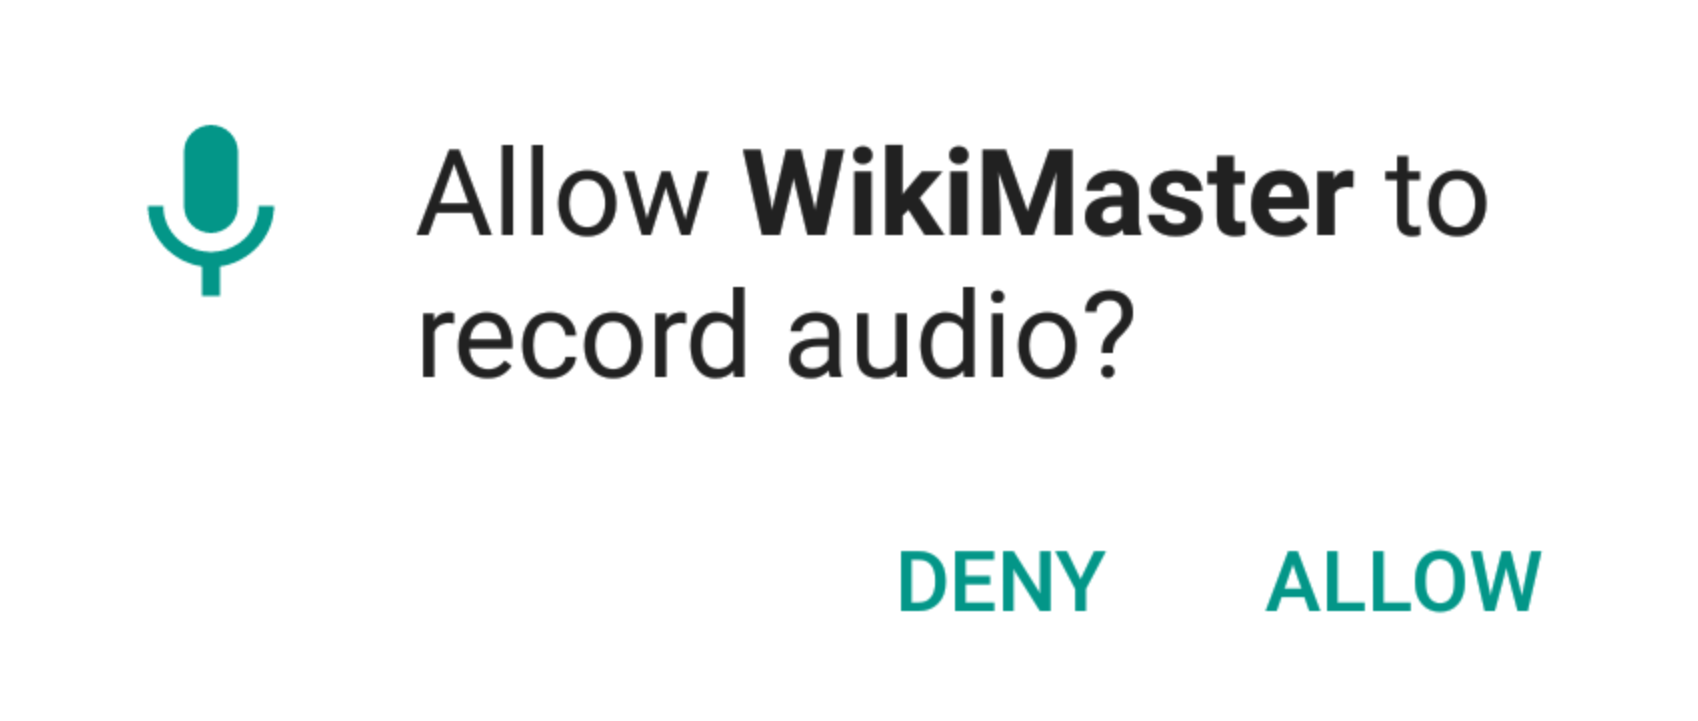 Command WikiMaster Quizzes with your voice